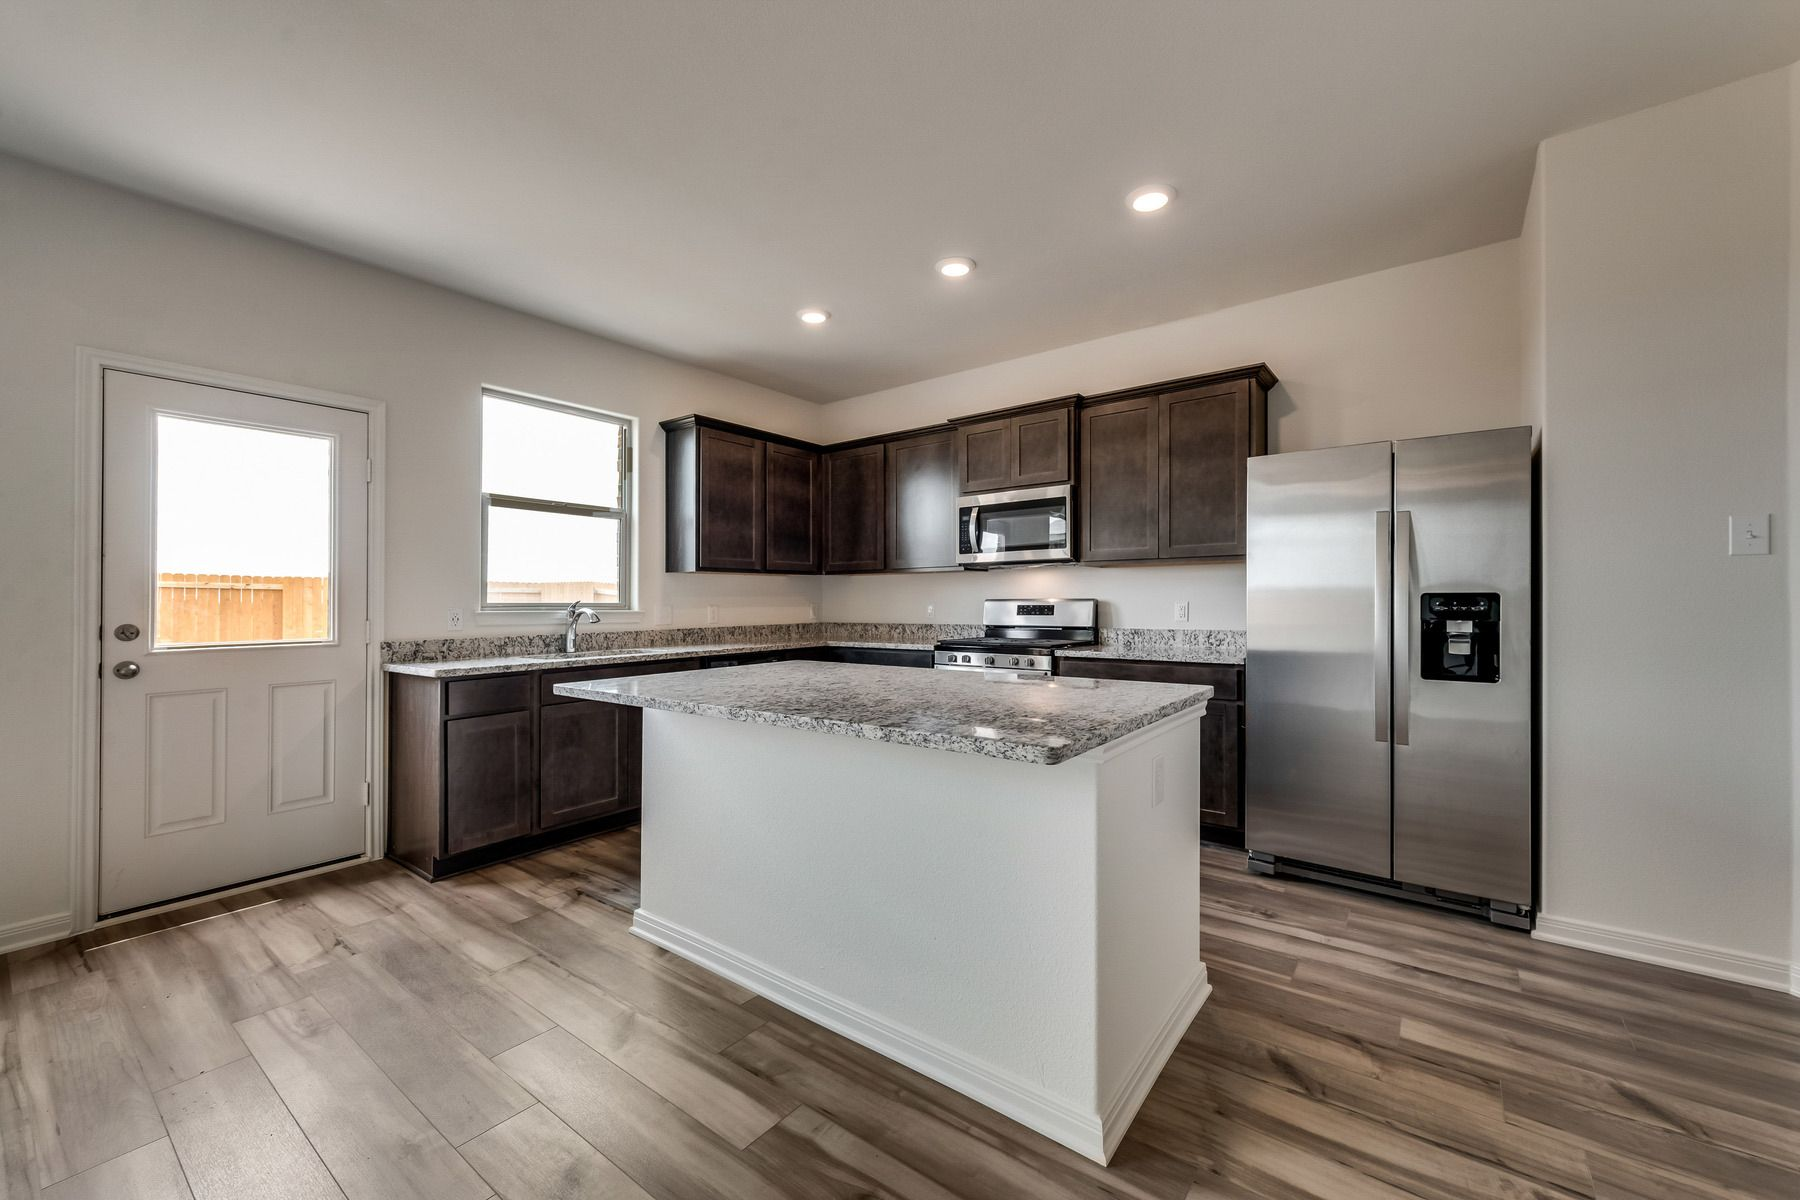 The Jaguar by LGI Homes:Enjoy stunning granite countertops and designer wood cabinetry in this kitchen.